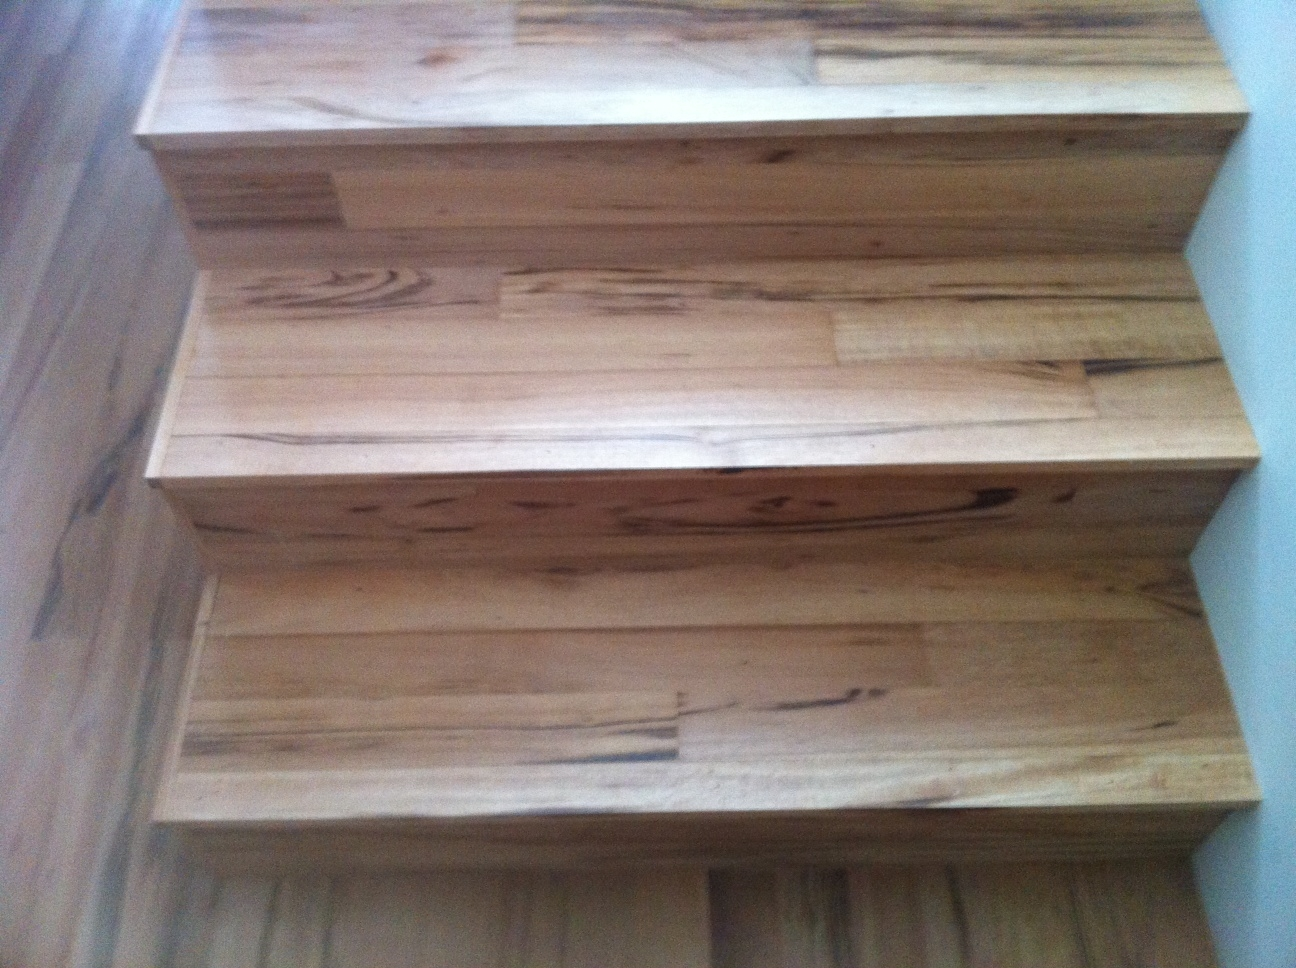 Stair Treads Using Flooring Stair Parts Blog Pertaining To Stair Protectors Wooden Stairs (Image 14 of 15)